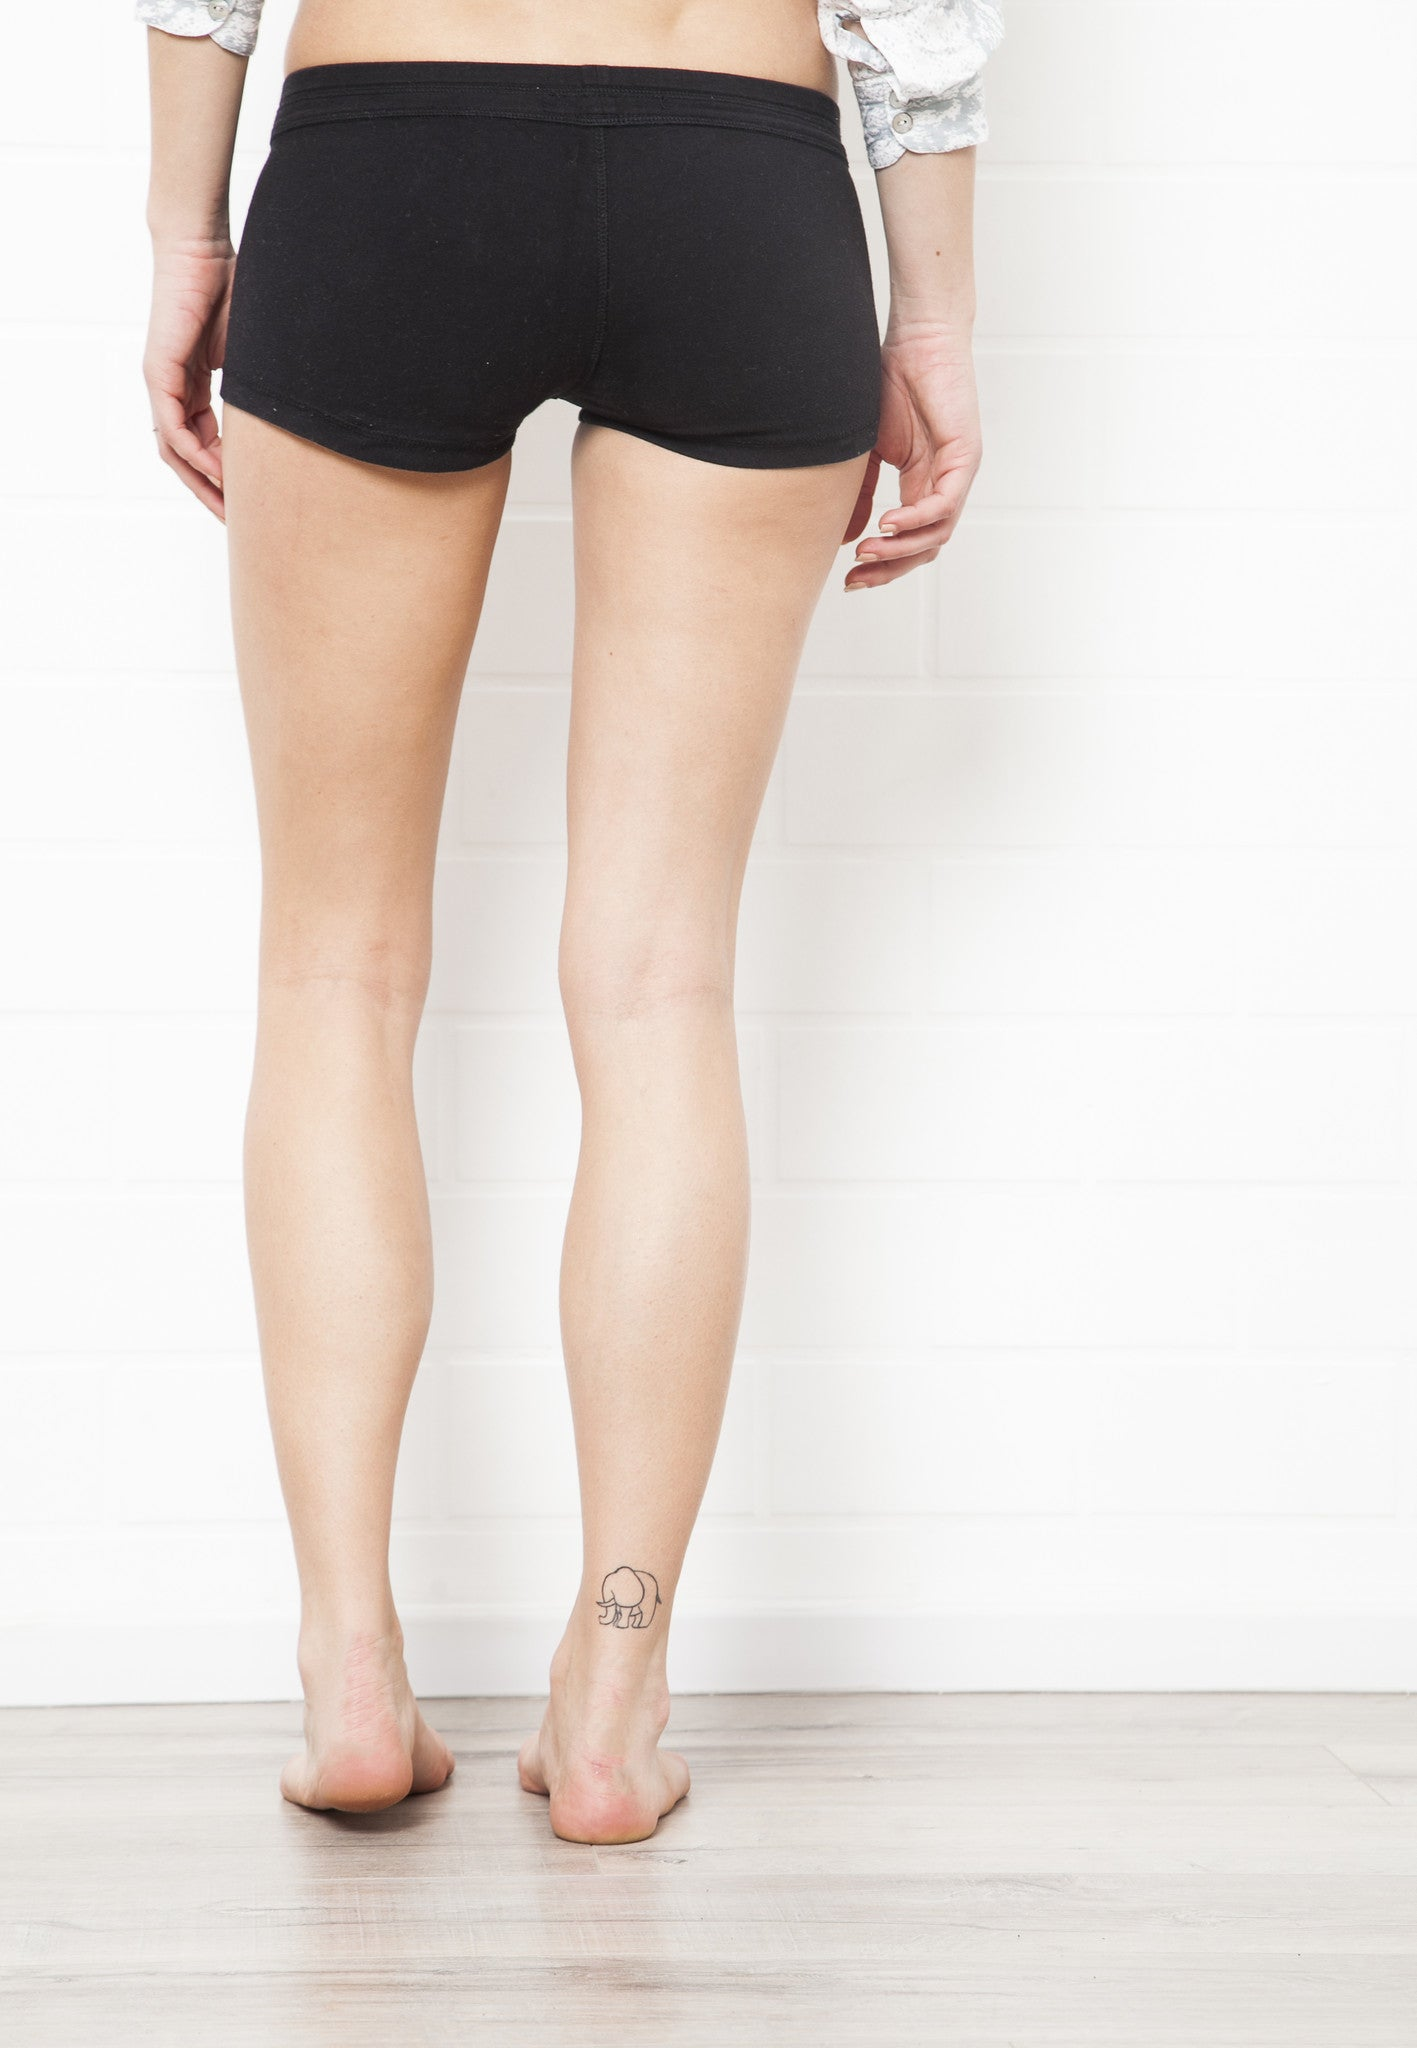 Low Waist Hotpants - Plain Colours - Beach Shorts - FUNKY SIMPLICITY